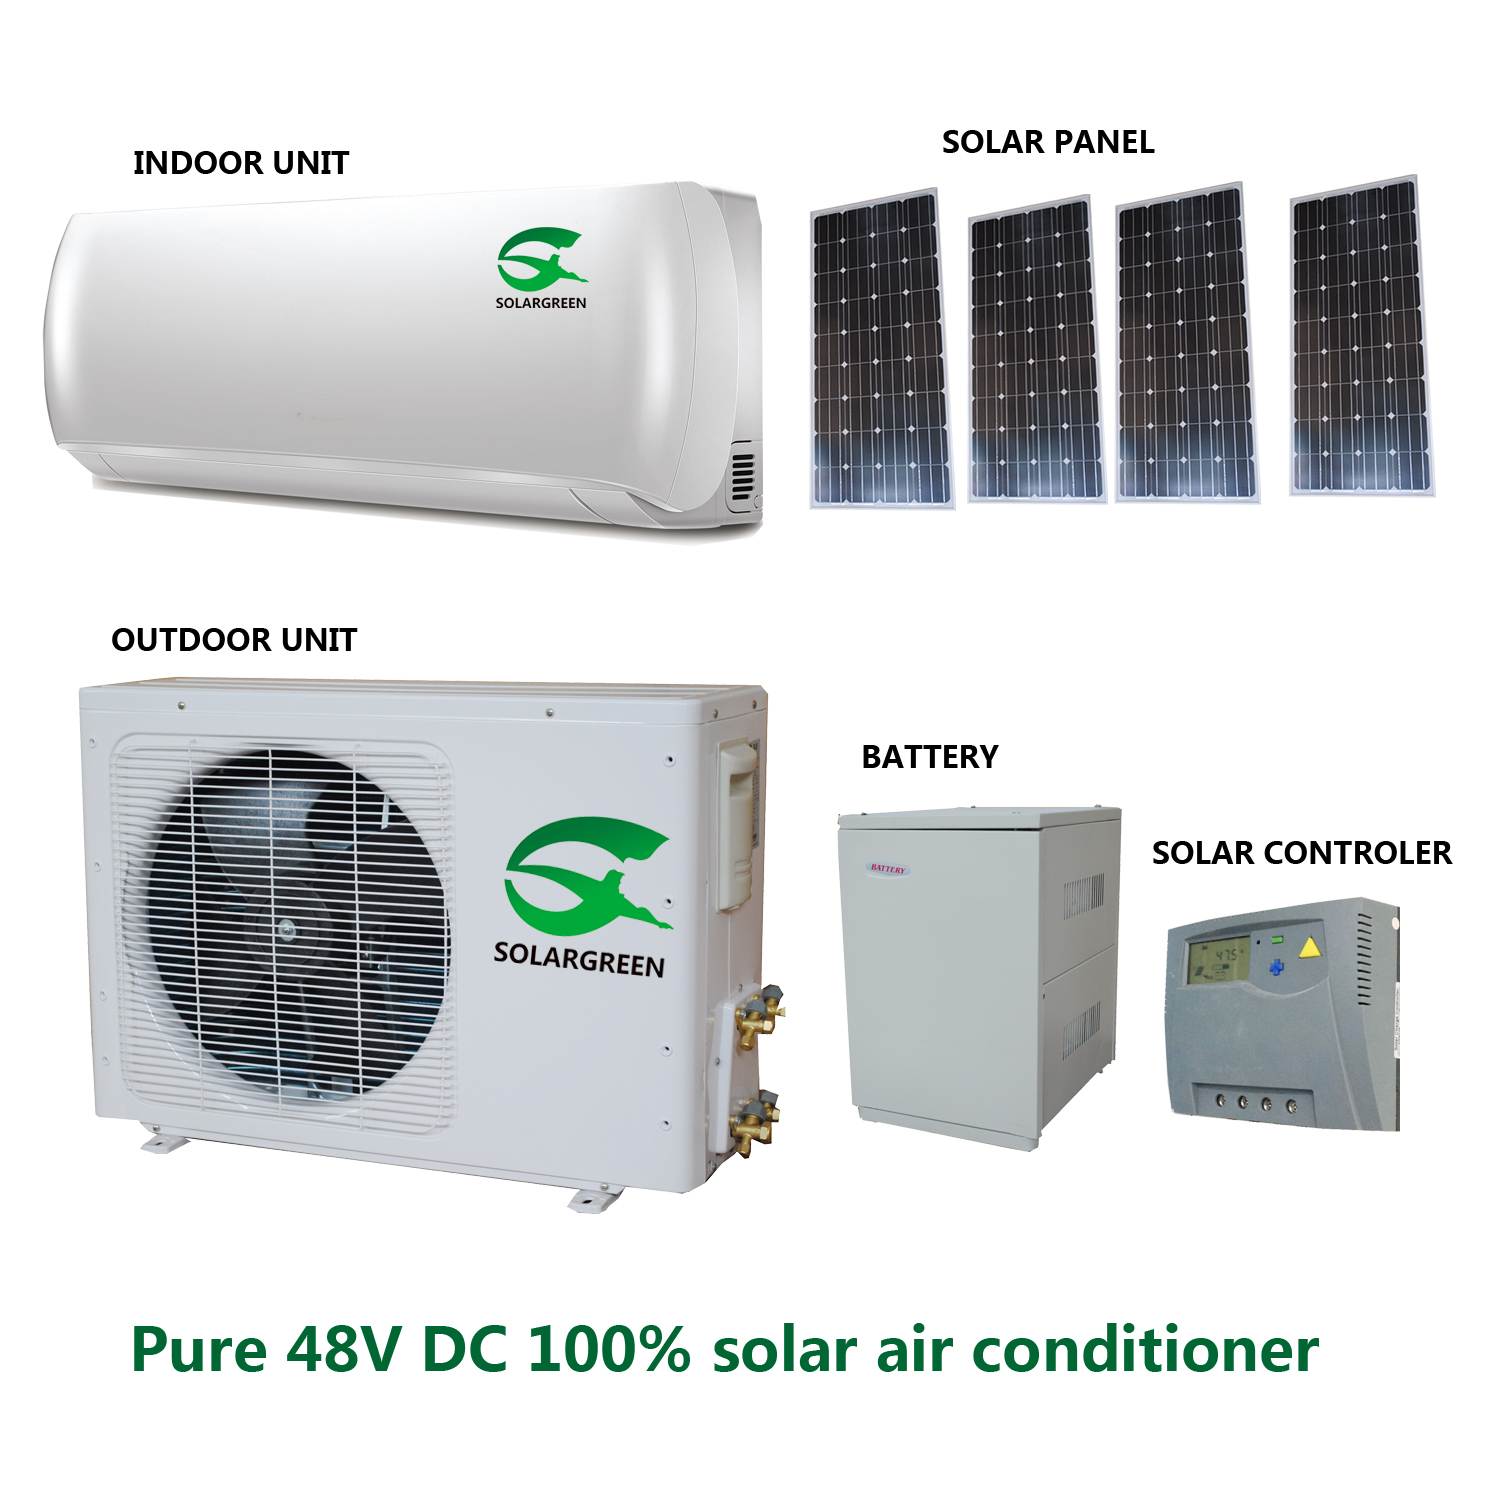 48V DC 9000btu-24000btu 100% off Grid Solar Air Conditioner with Panasonic Compressor and Motors